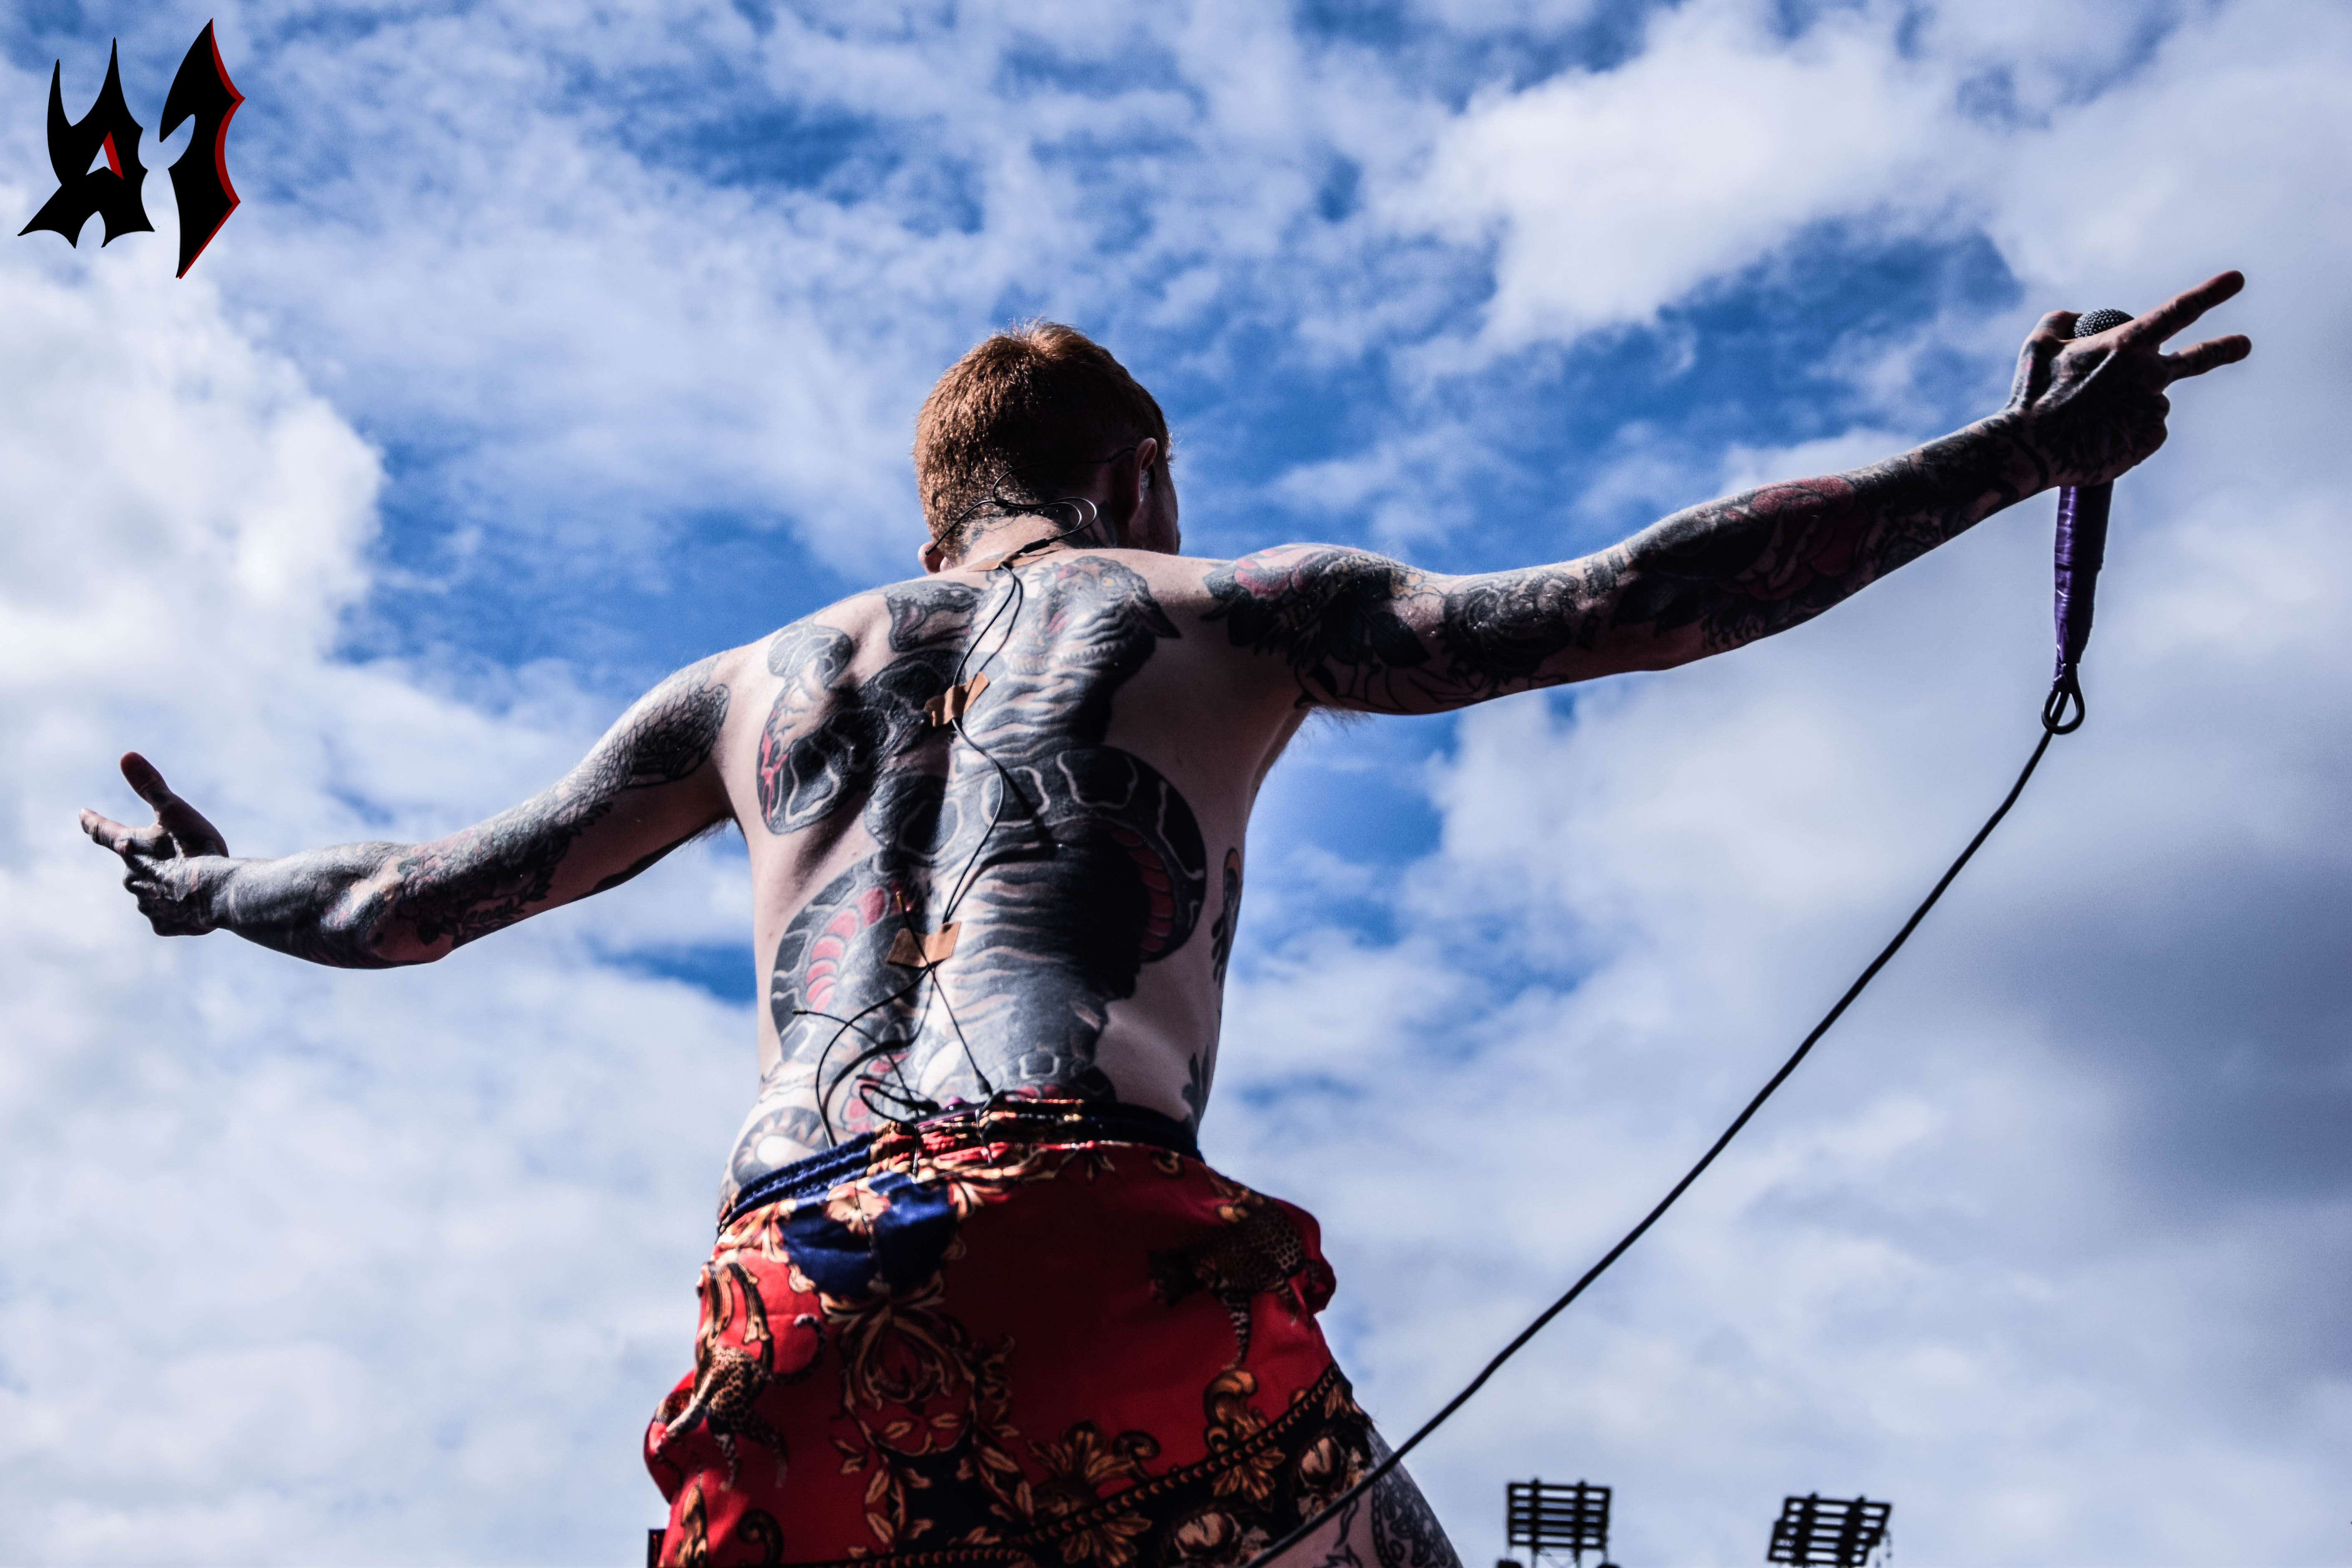 Donwload 2018 – Day 3 - Frank Carter 6